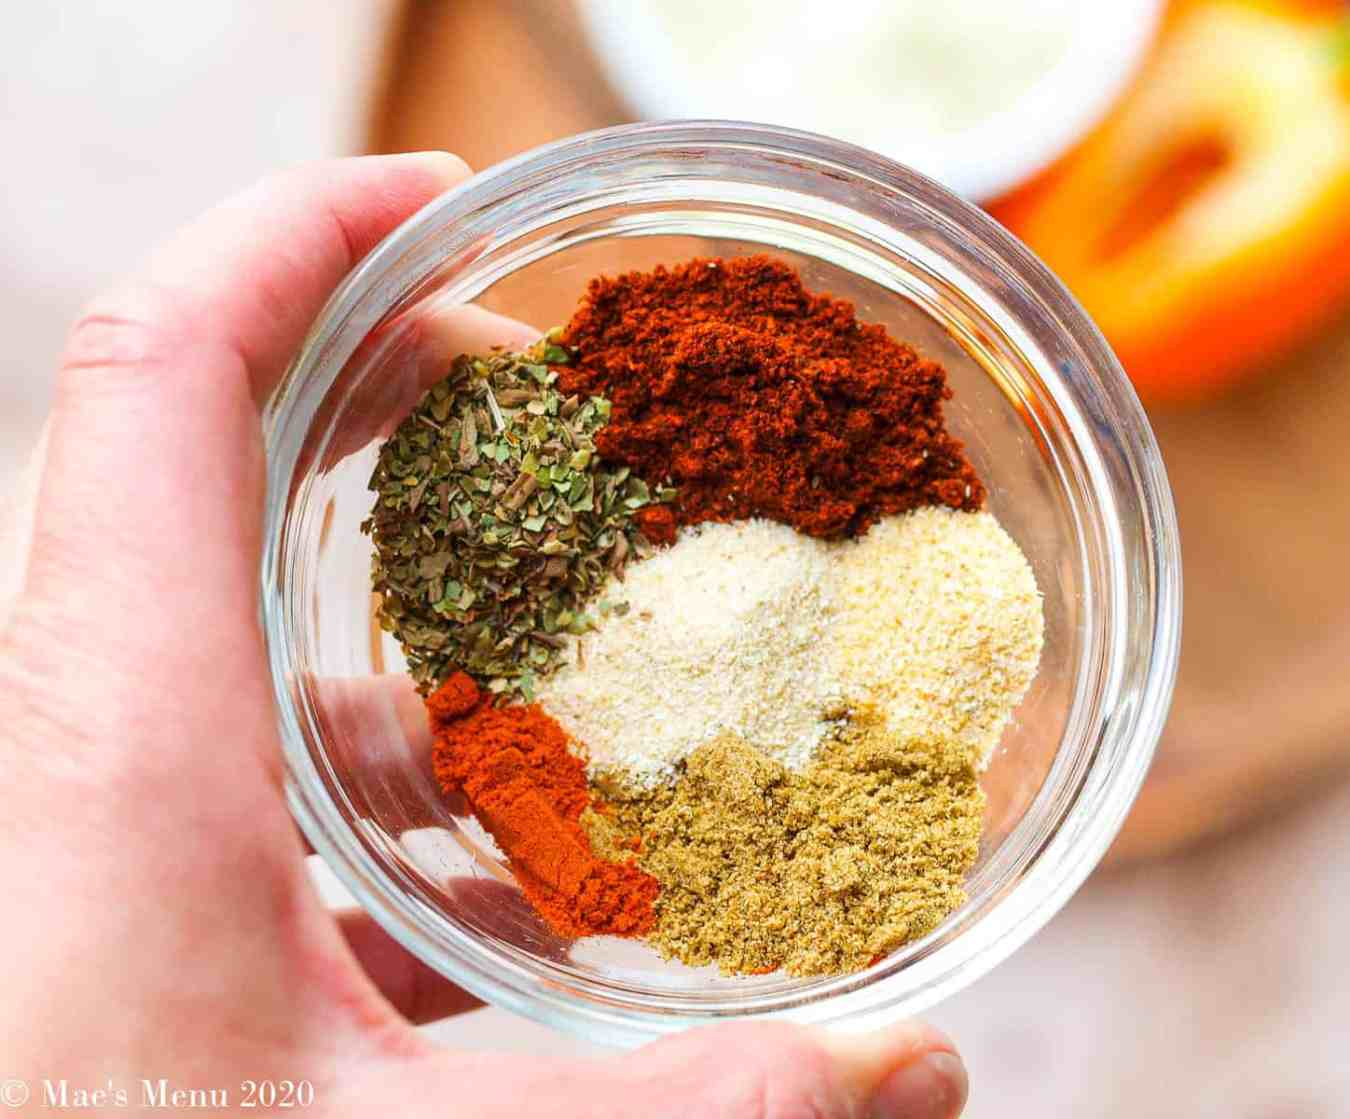 A small clear dish full of taco seasoning spices over a platter of onion and peppers.